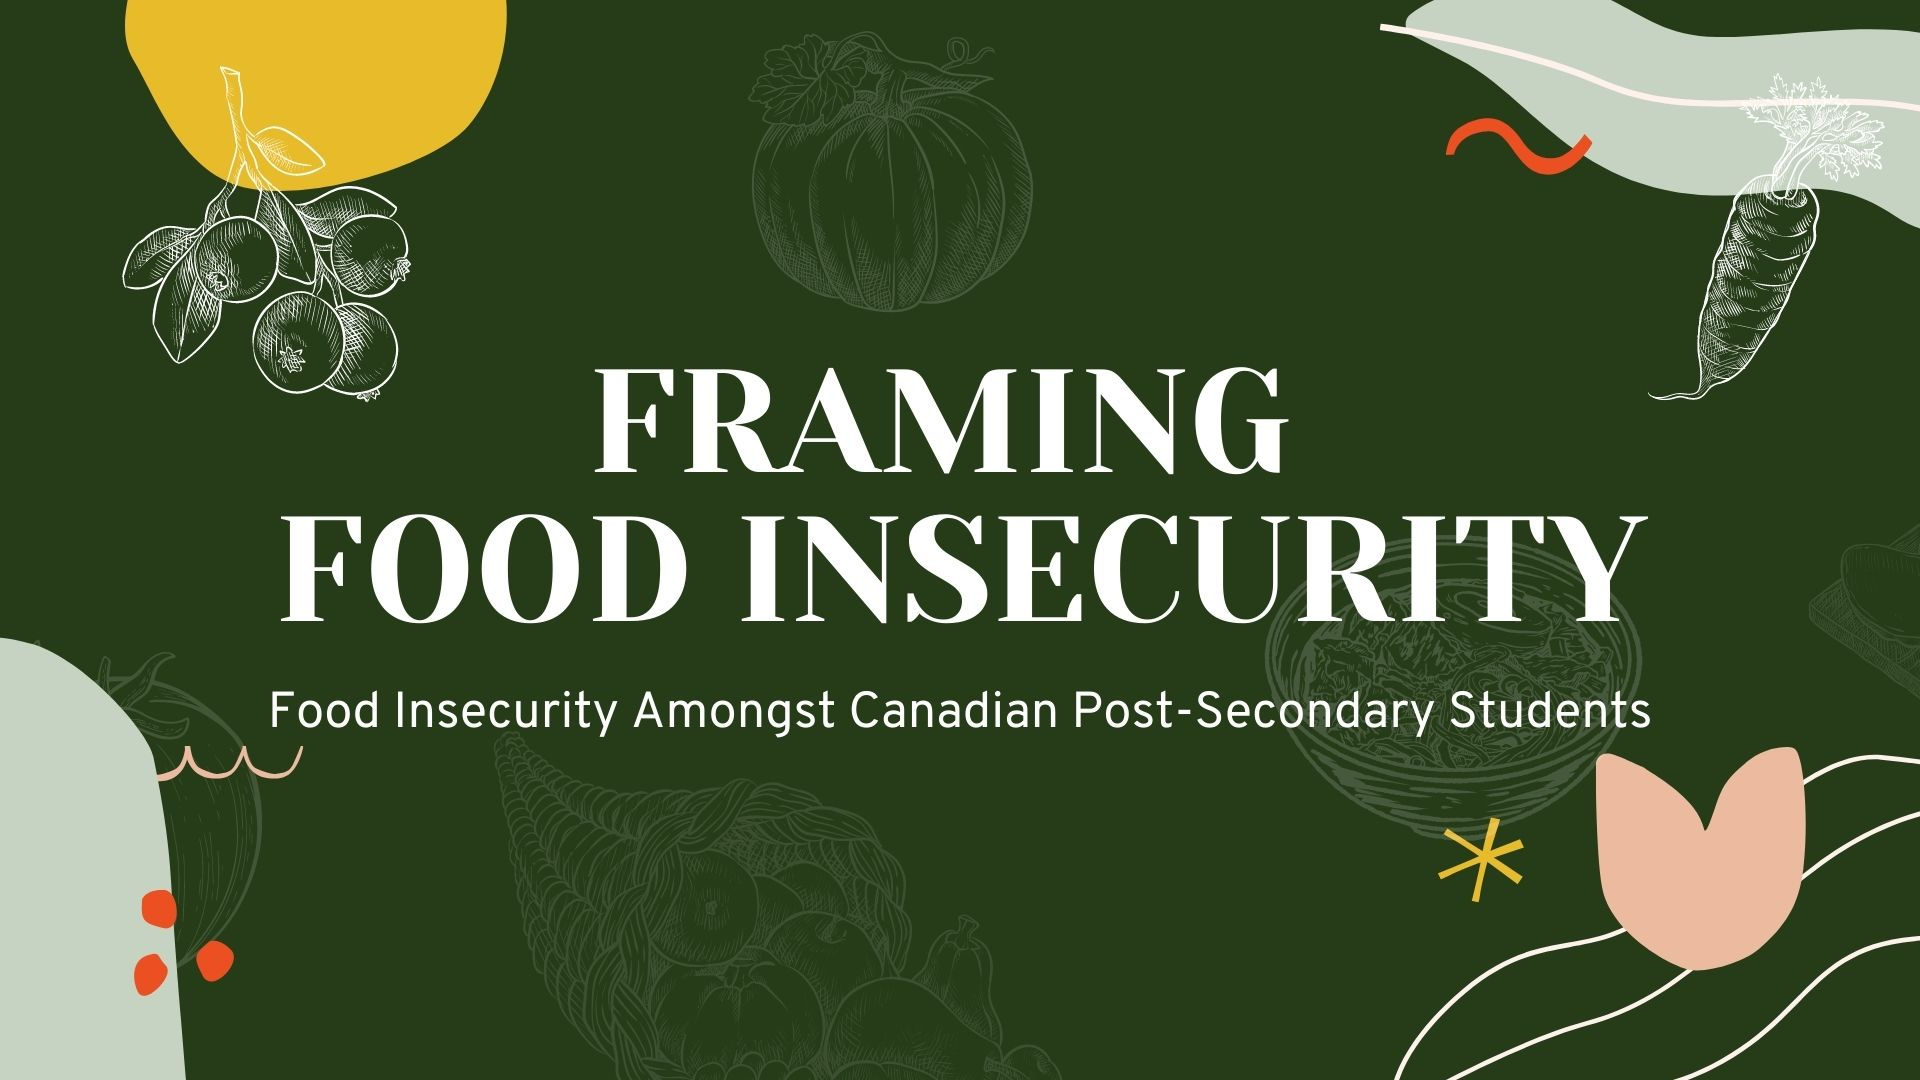 Framing Food Insecurity: Food Insecurity Amongst Canadian Post-Secondary Students